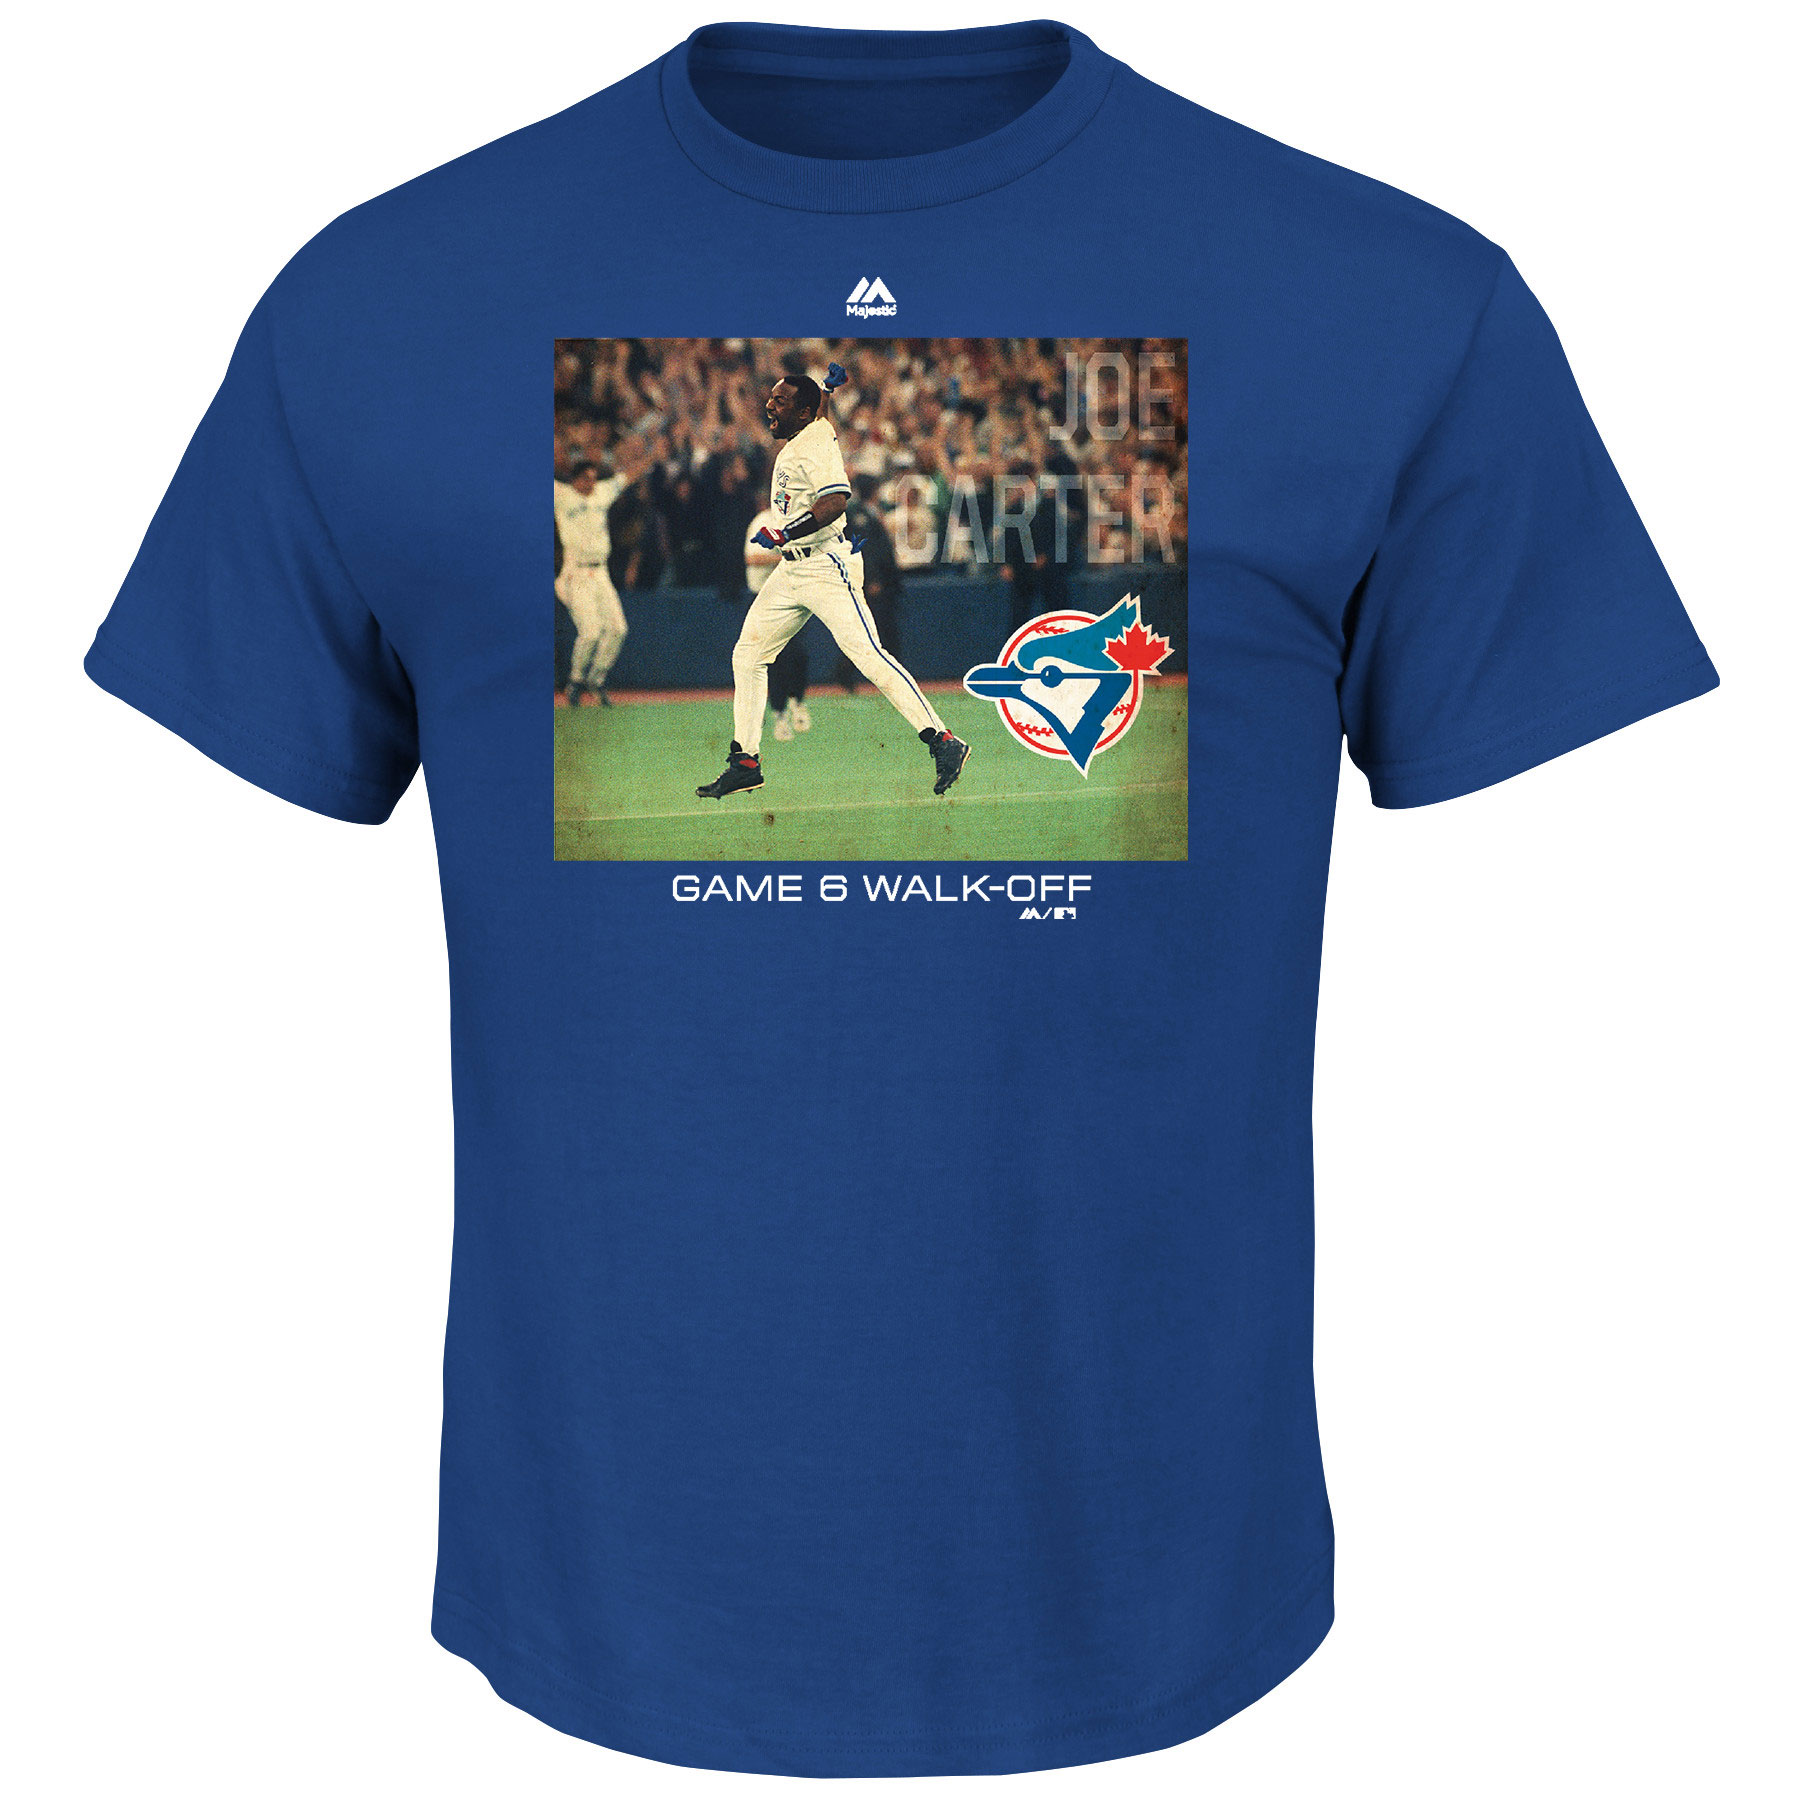 Joe Carter Toronto Blue Jays Majestic Cooperstown Genuine Player T-Shirt - Light Blue